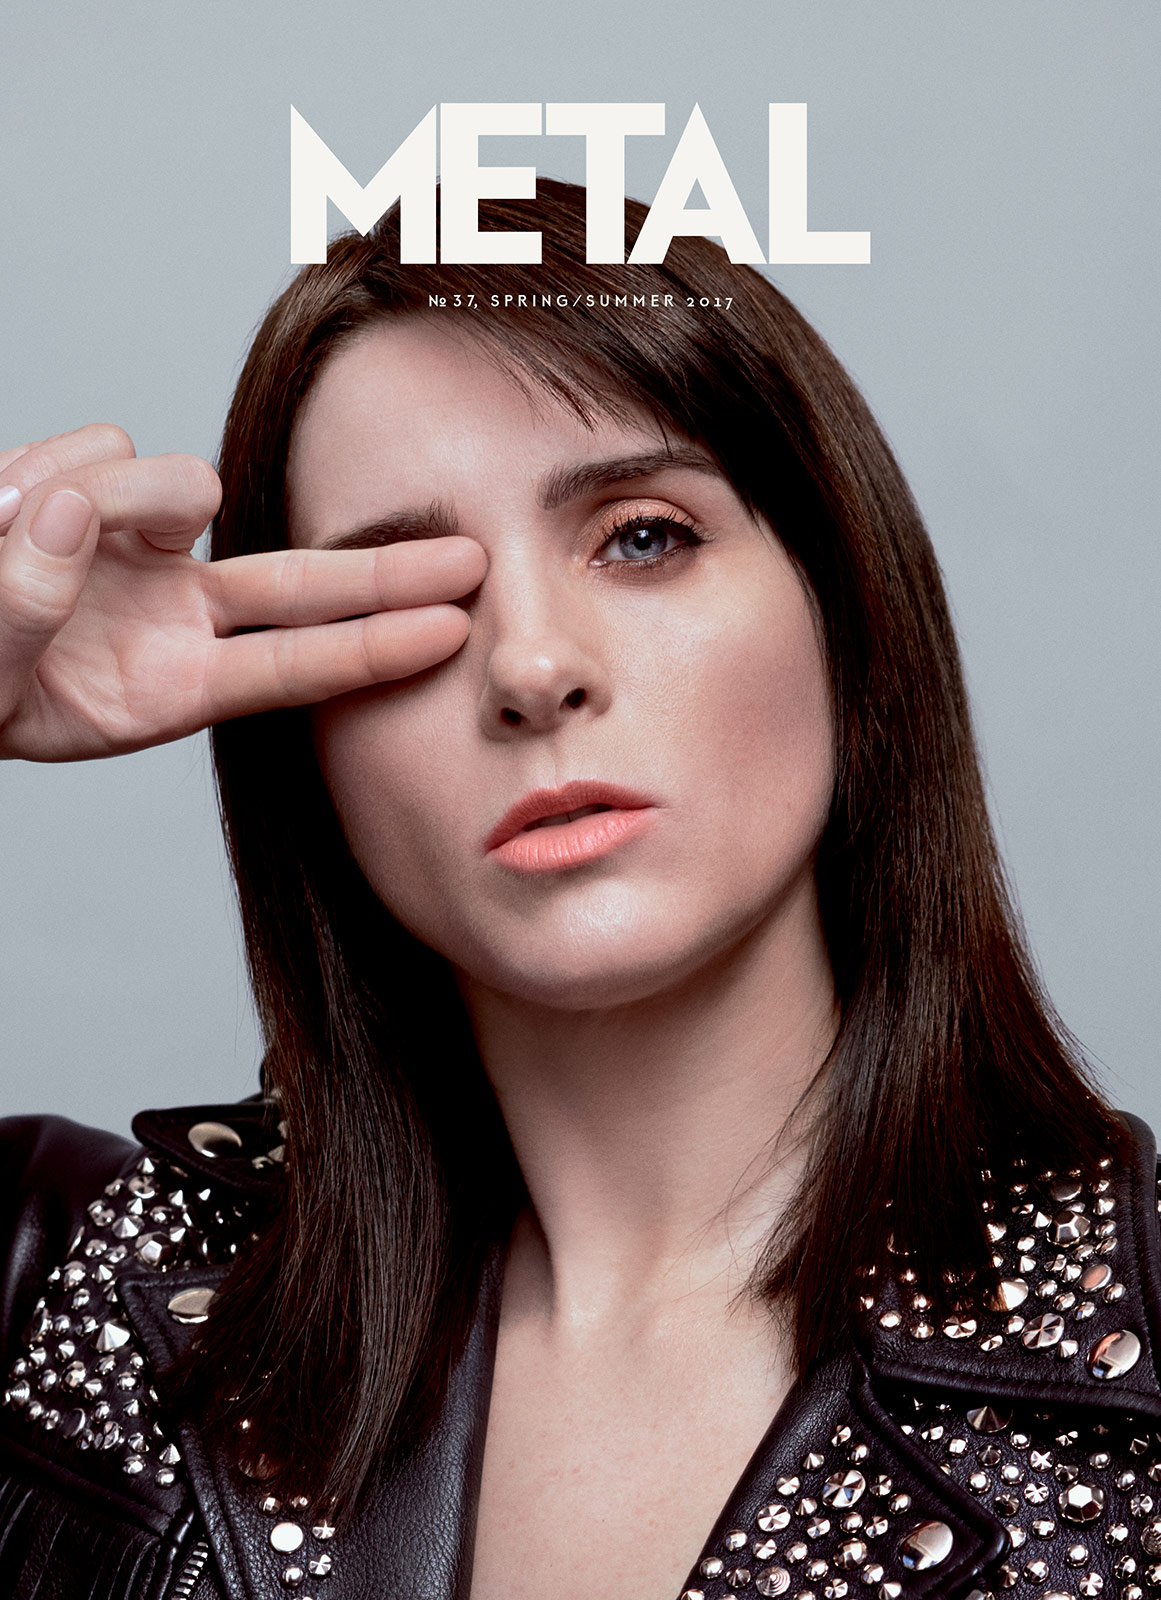 COVER 6 - Michele Hicks photographed by Ben Lamberty wearing jacket Rodarte.